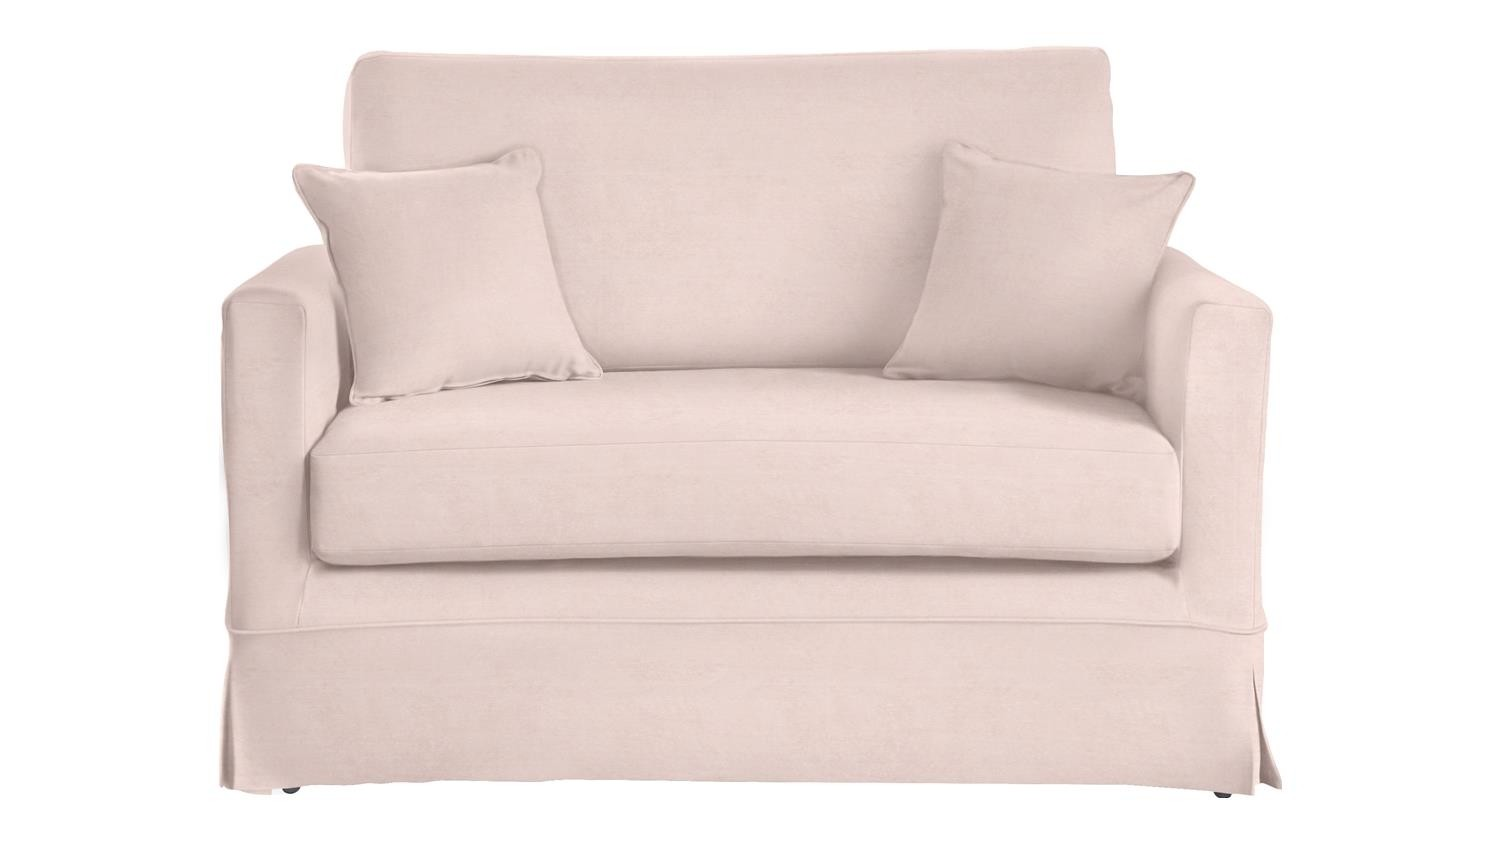 The Gifford Love Seat Sofa Bed